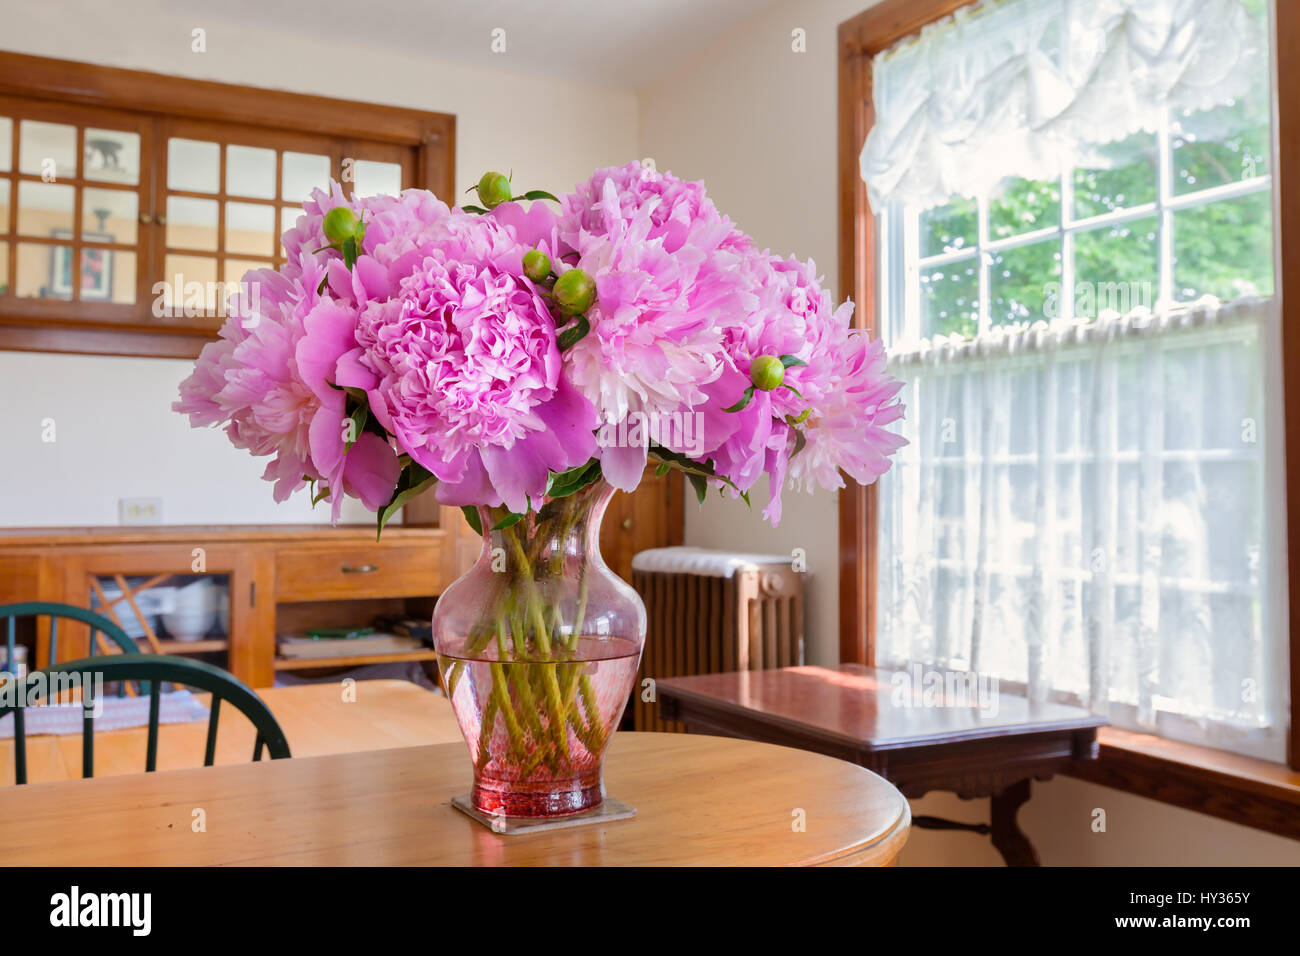 Peony bouquet in an older home interior. - Stock Image